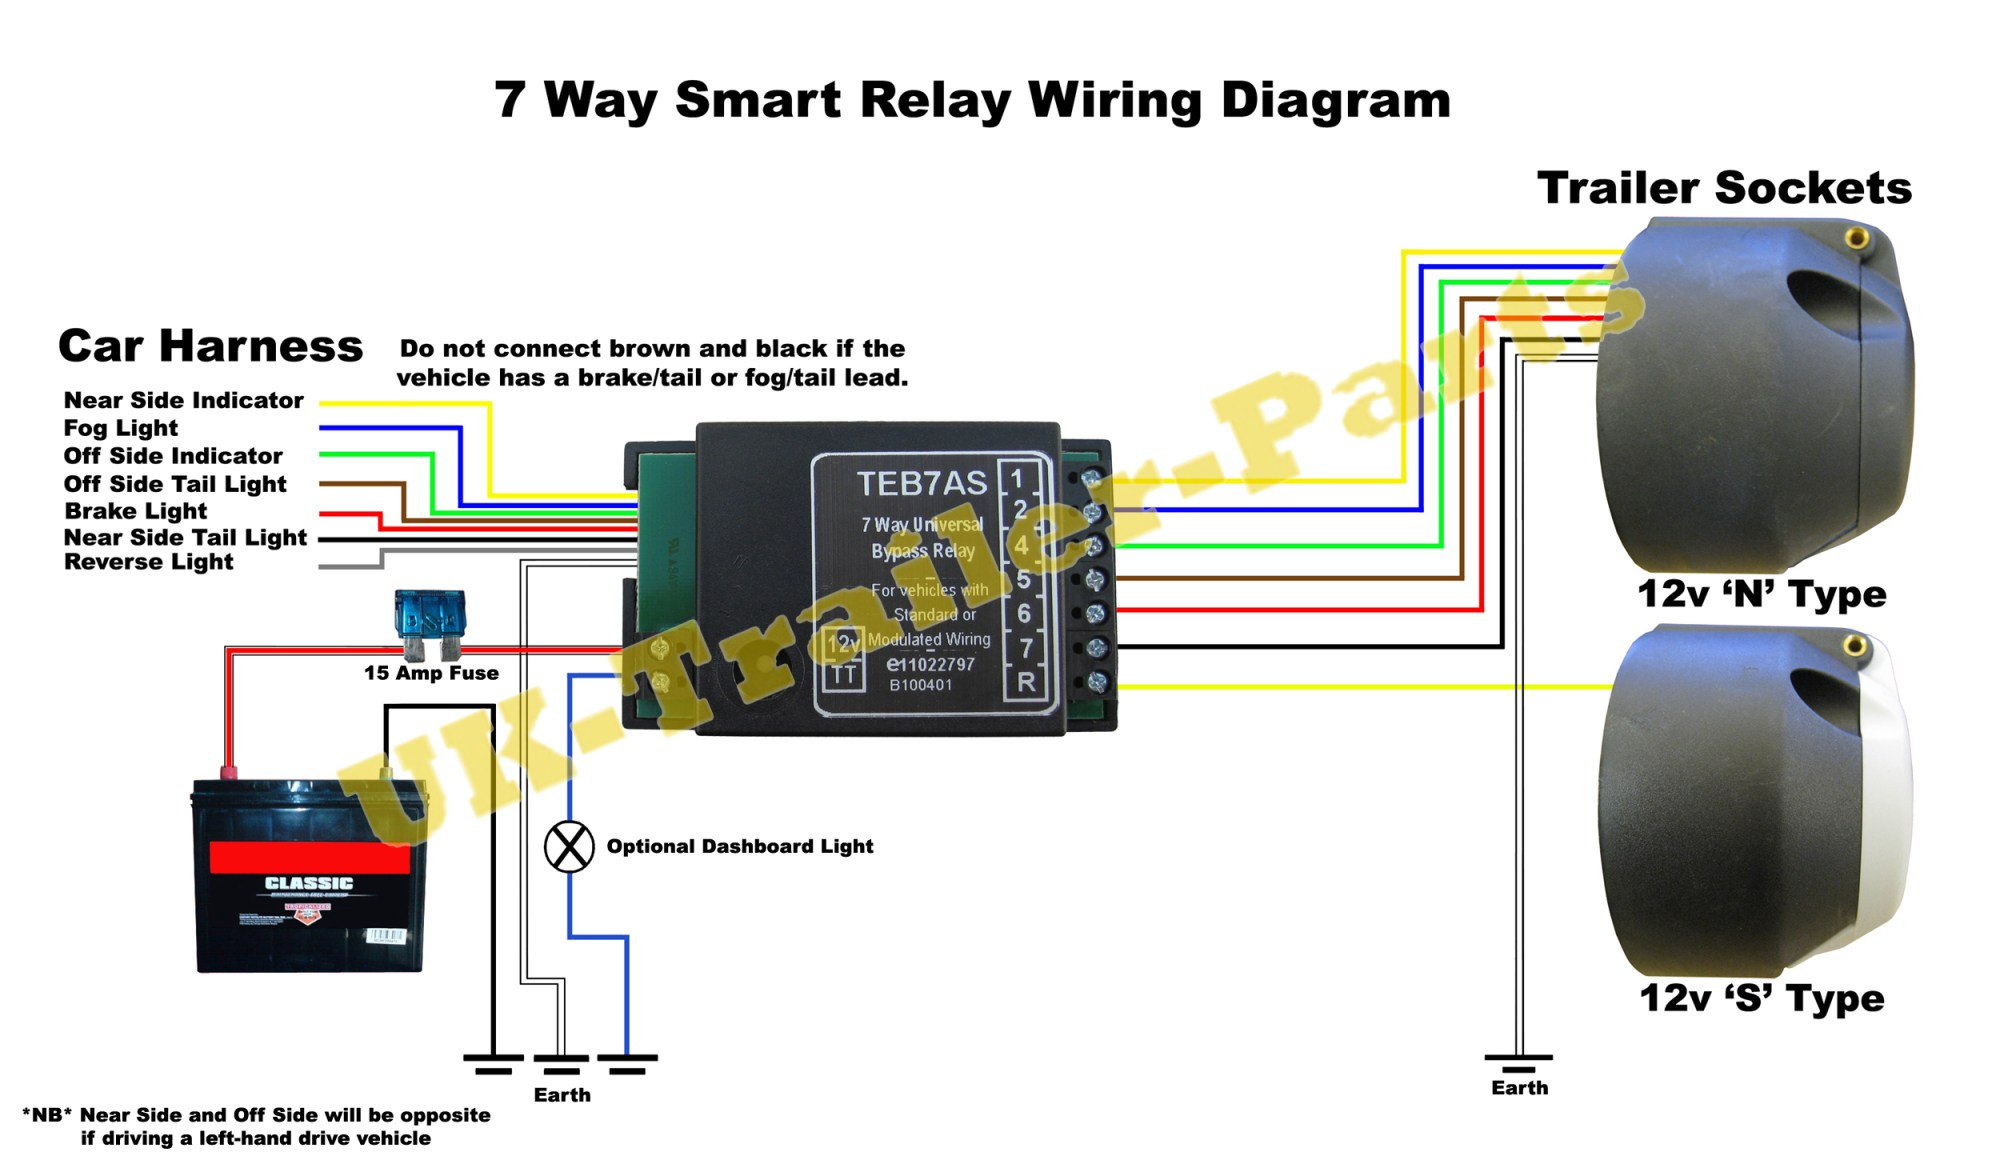 hight resolution of 7 way universal bypass relay wiring diagram uk trailer parts transducer wiring diagram trailer wiring diagram relay